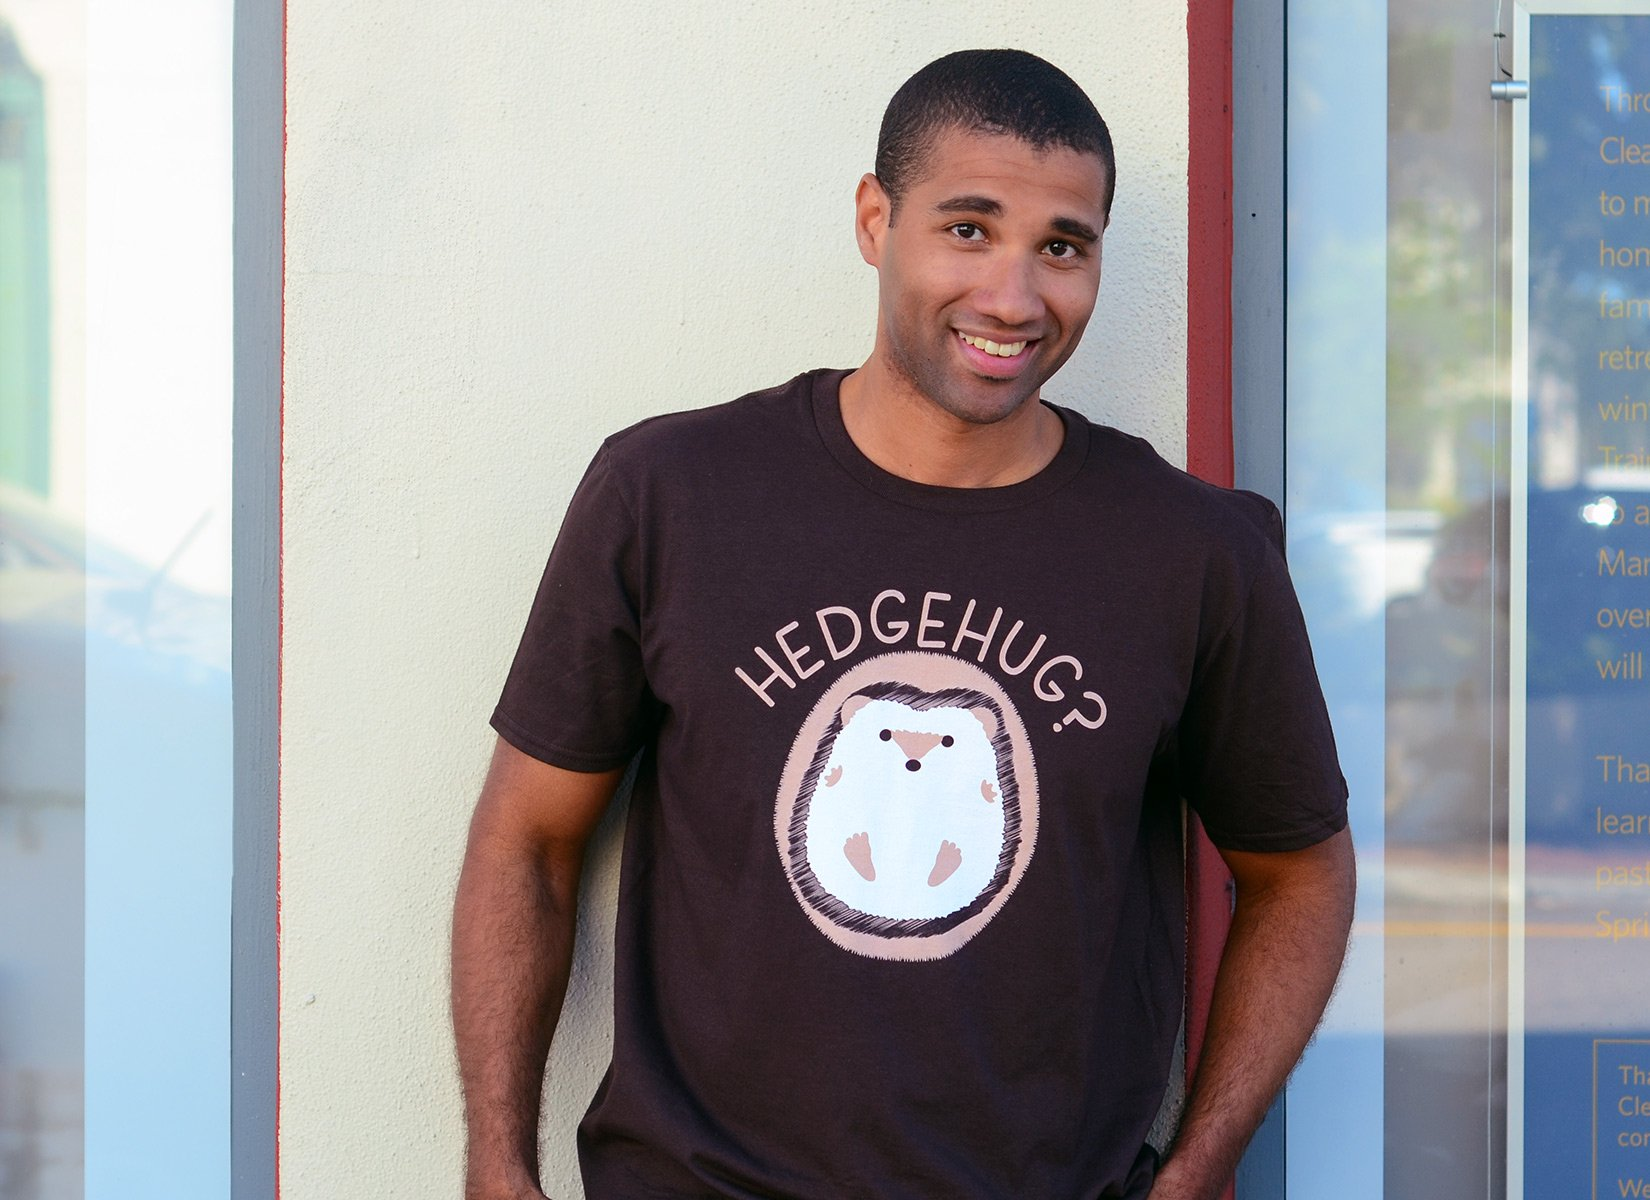 Hedgehug on Mens T-Shirt